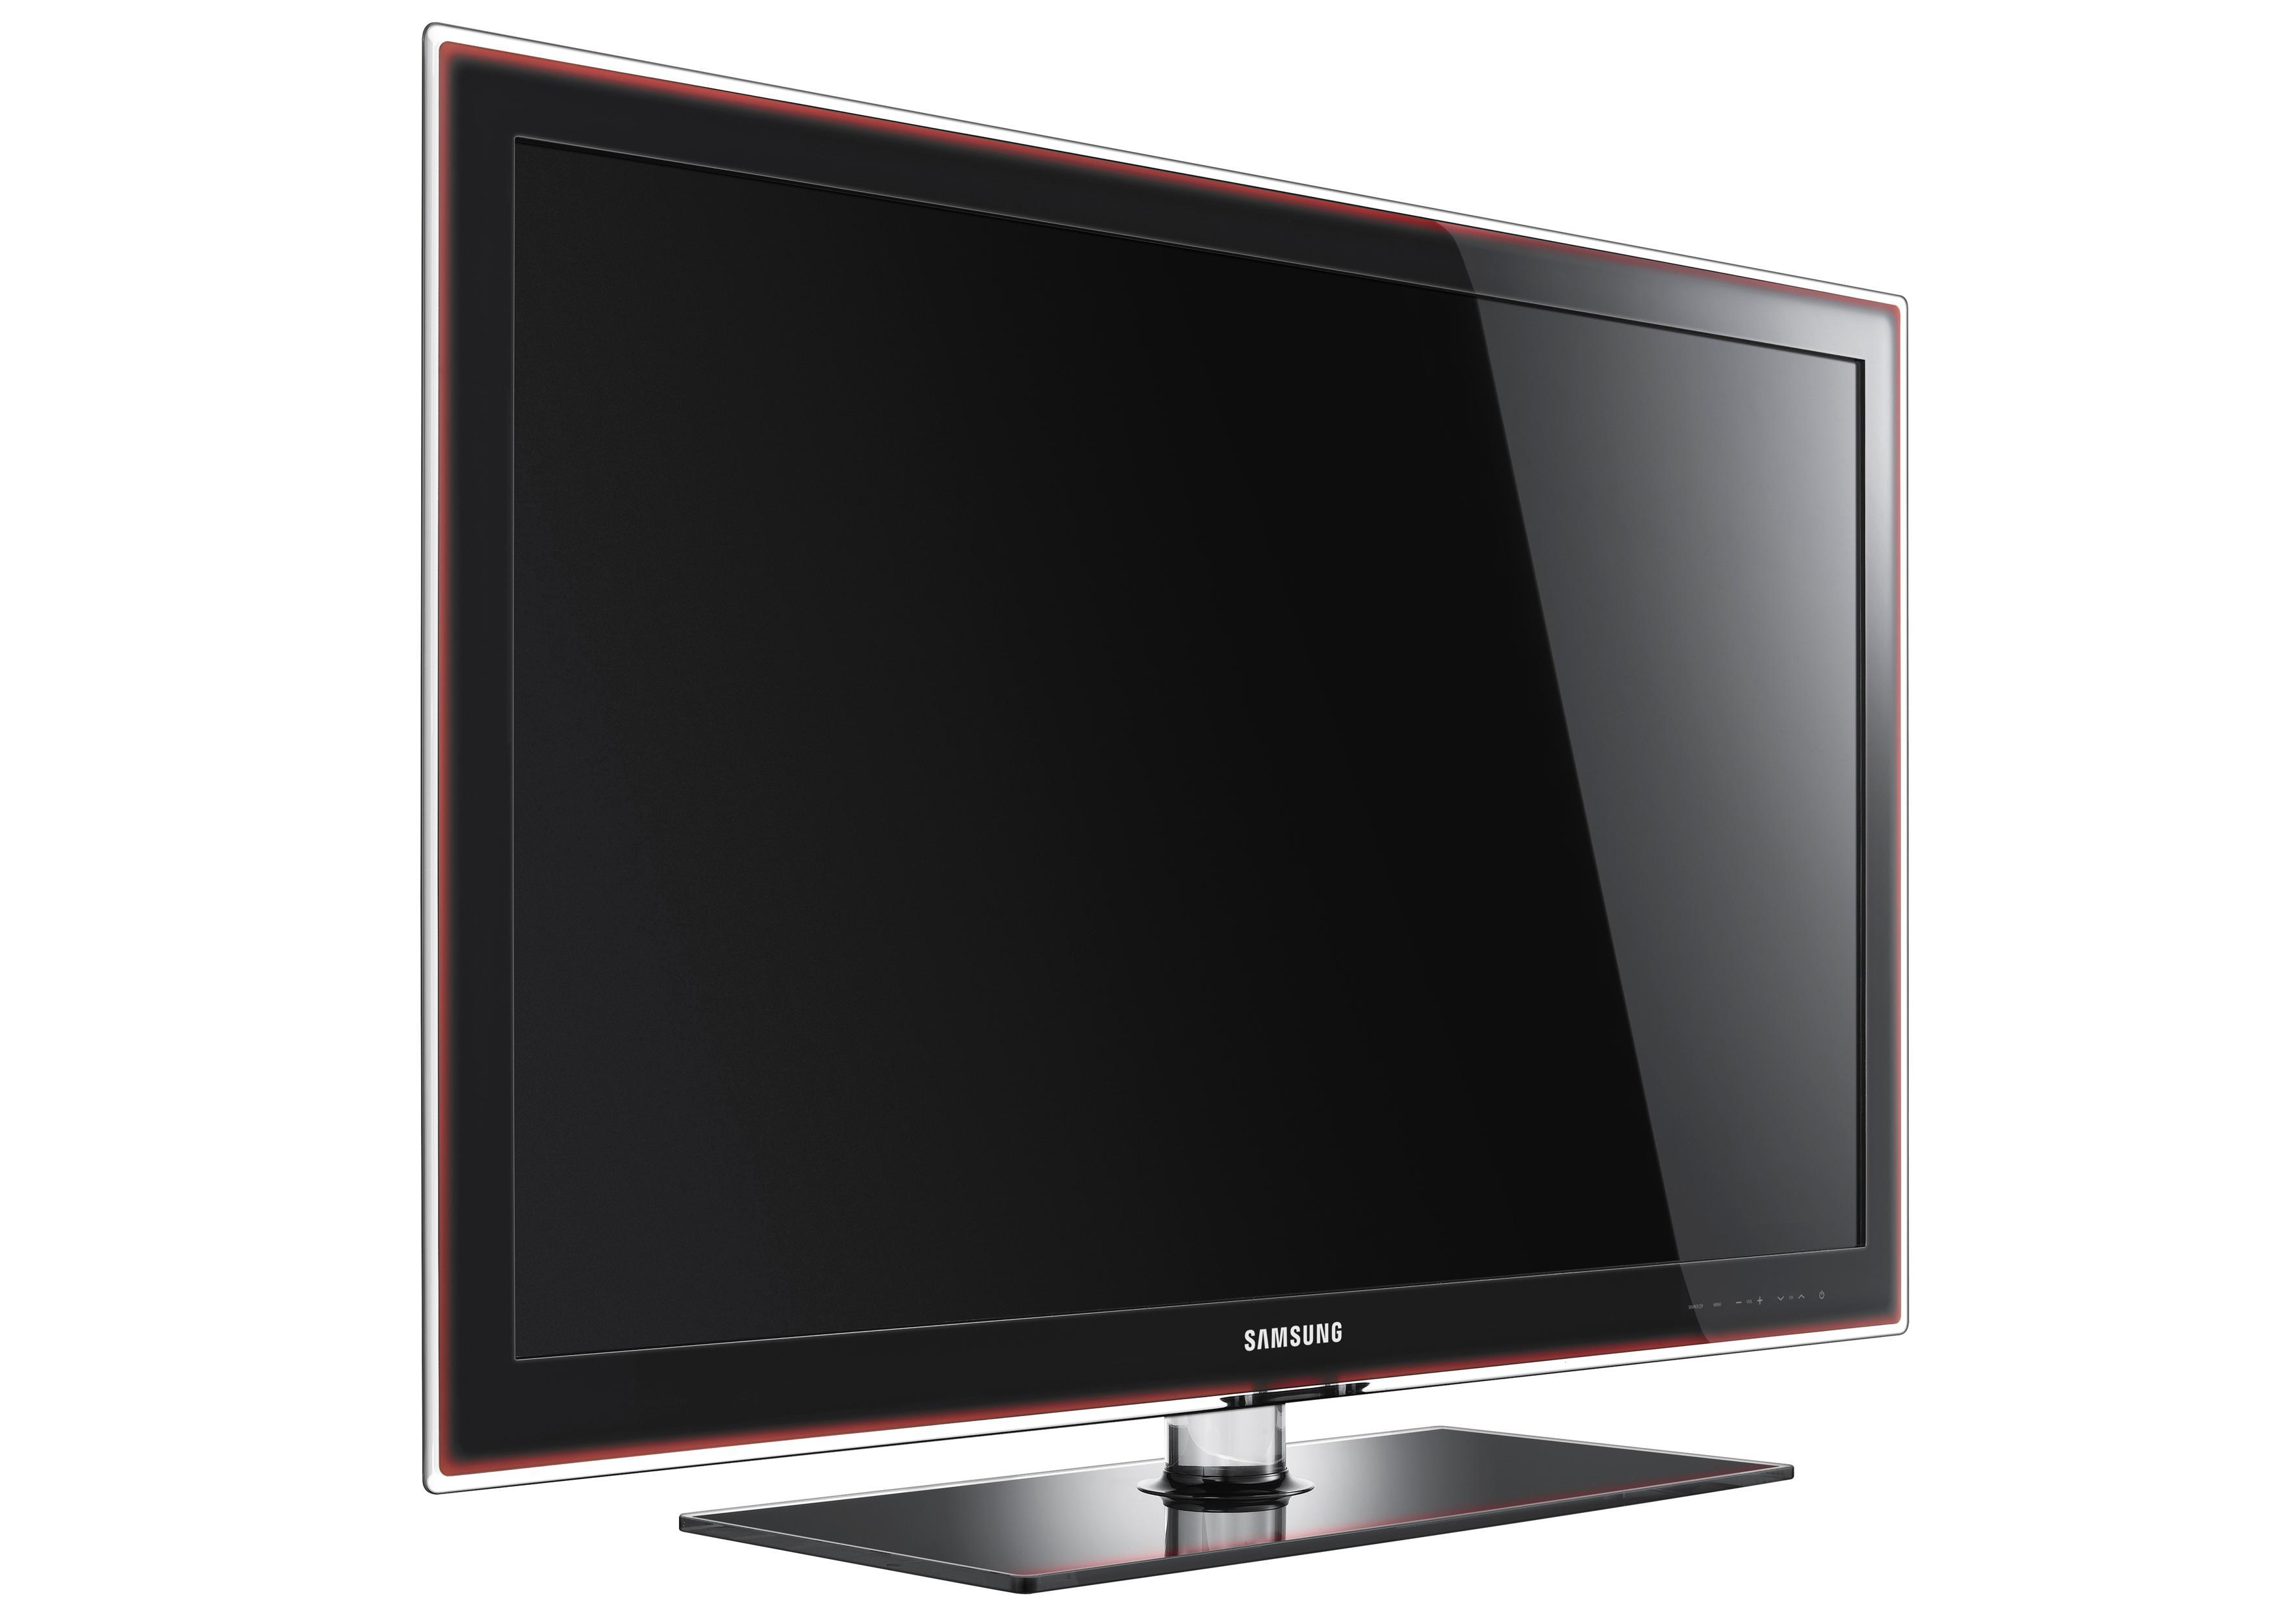 Samsung UNC5000 series LED-based LCD